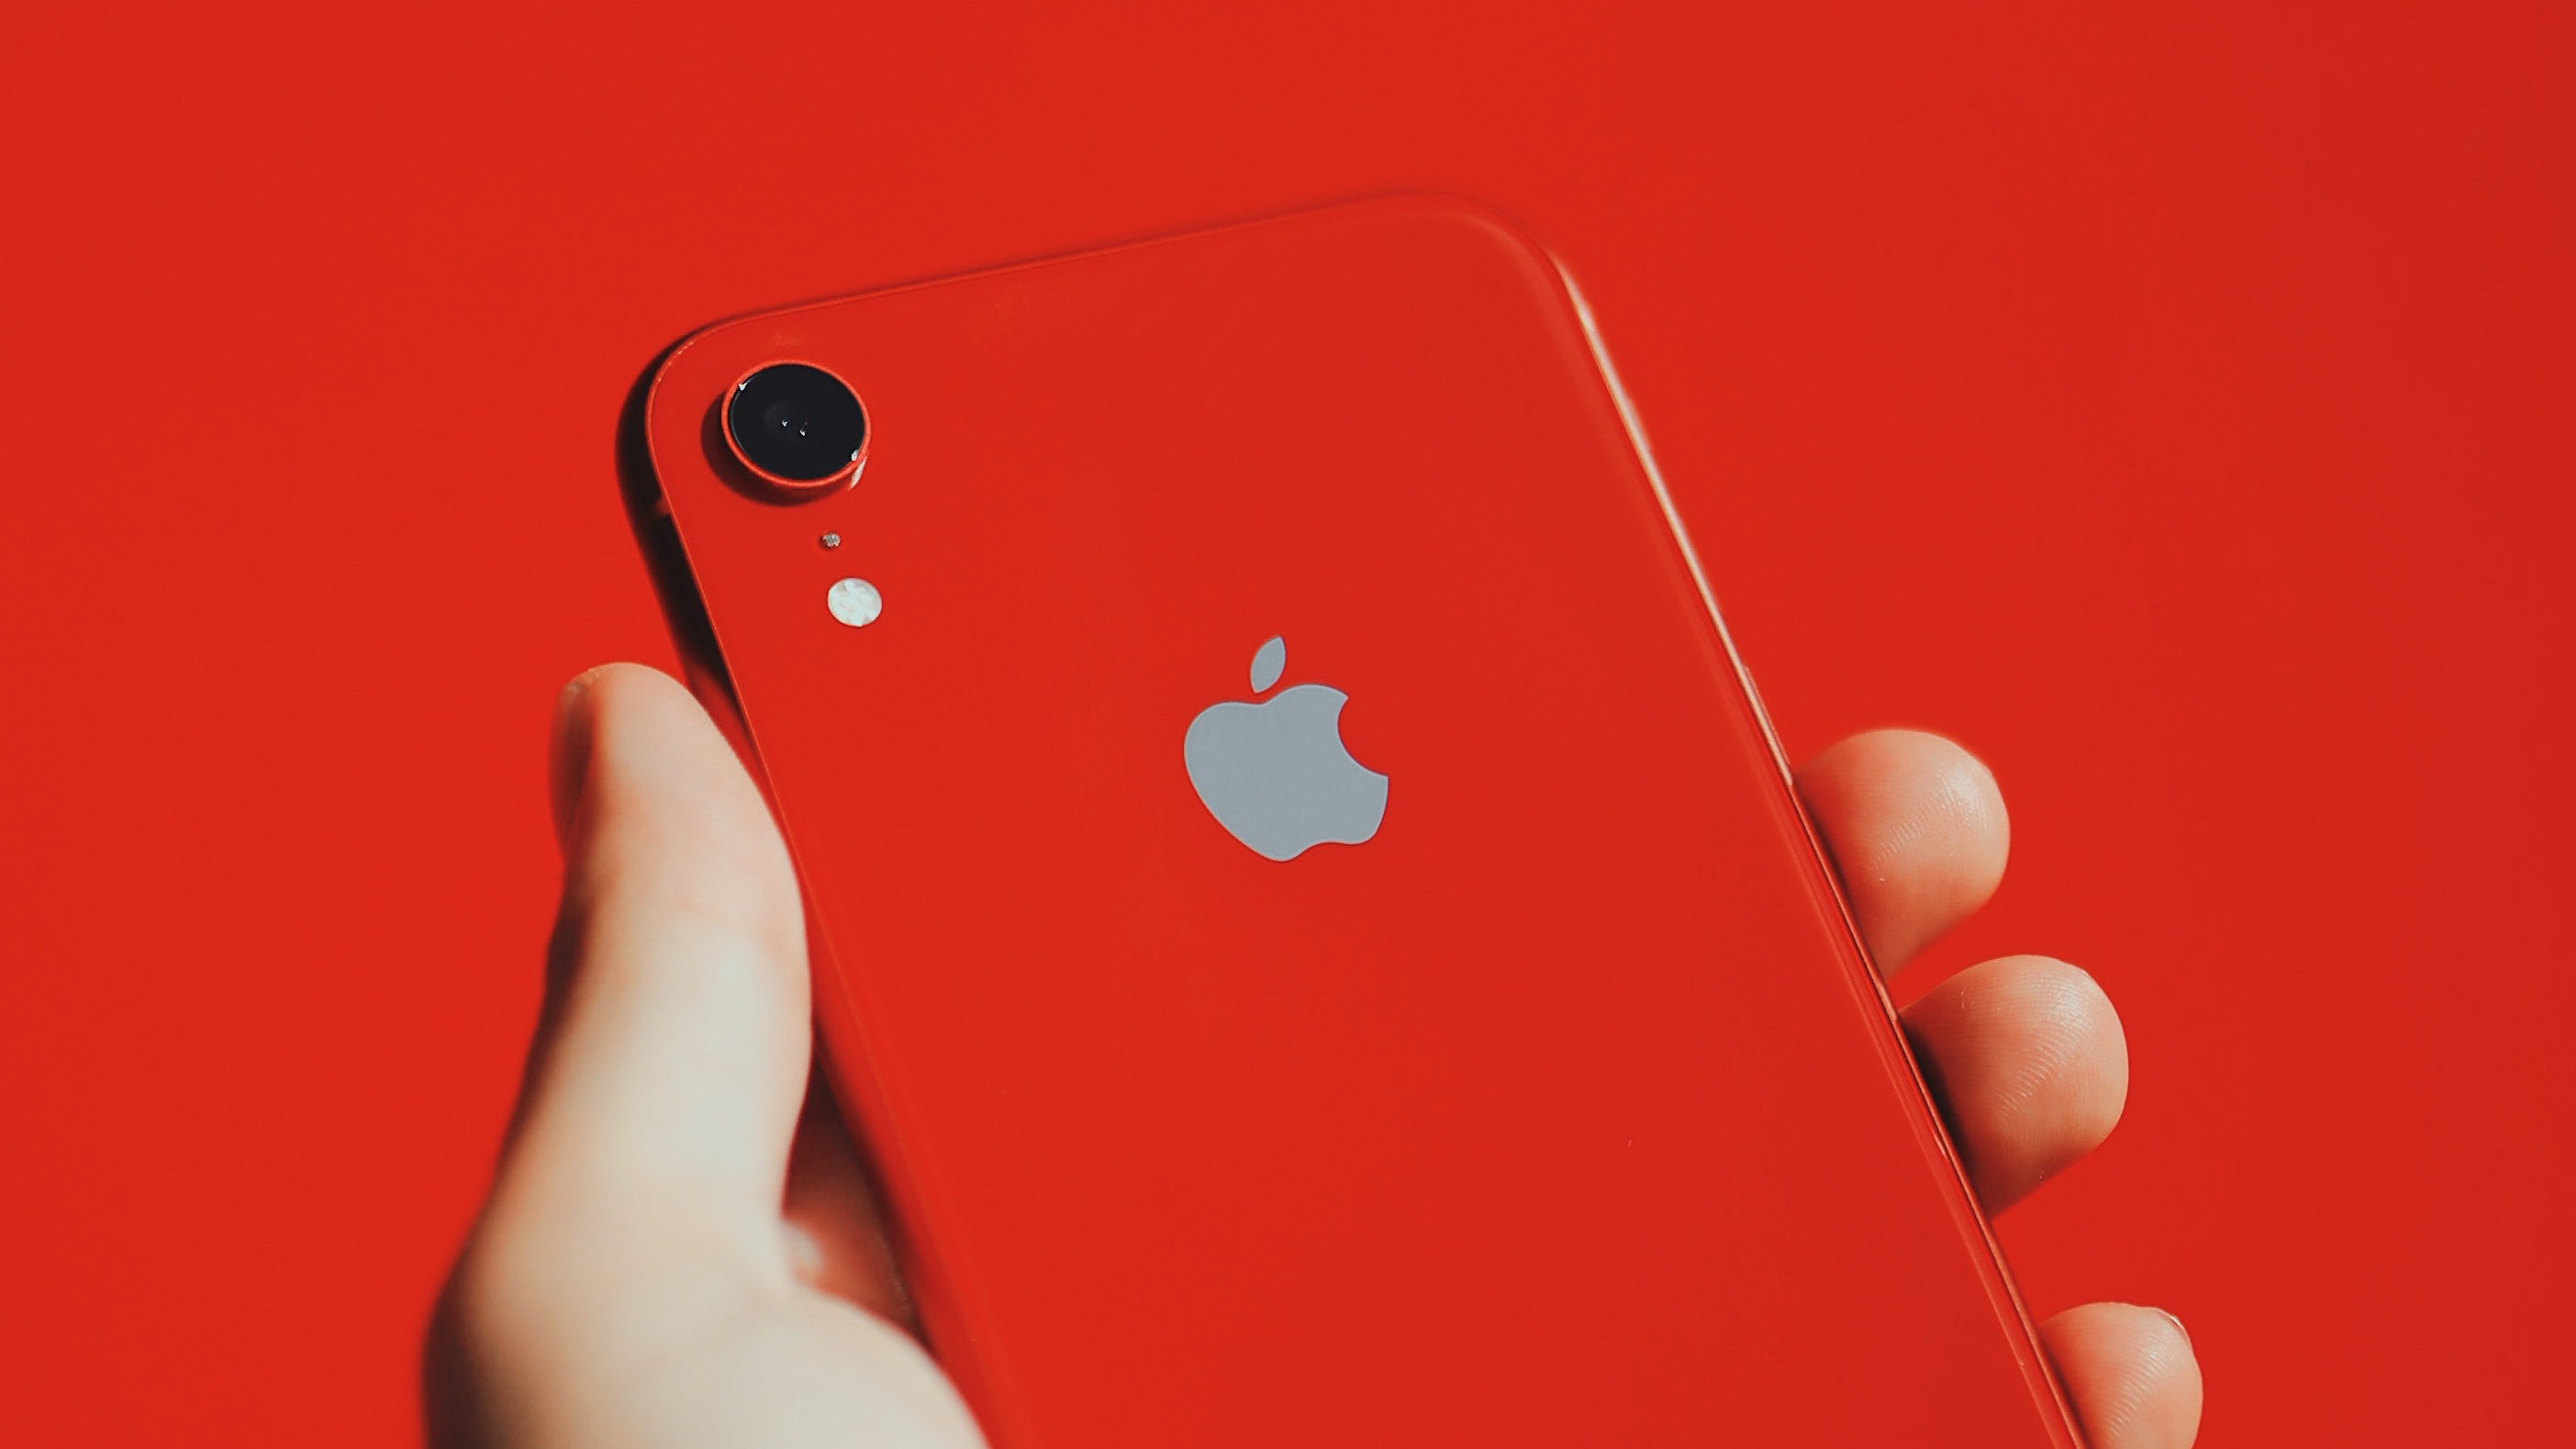 iPhone rood in hand 16x9